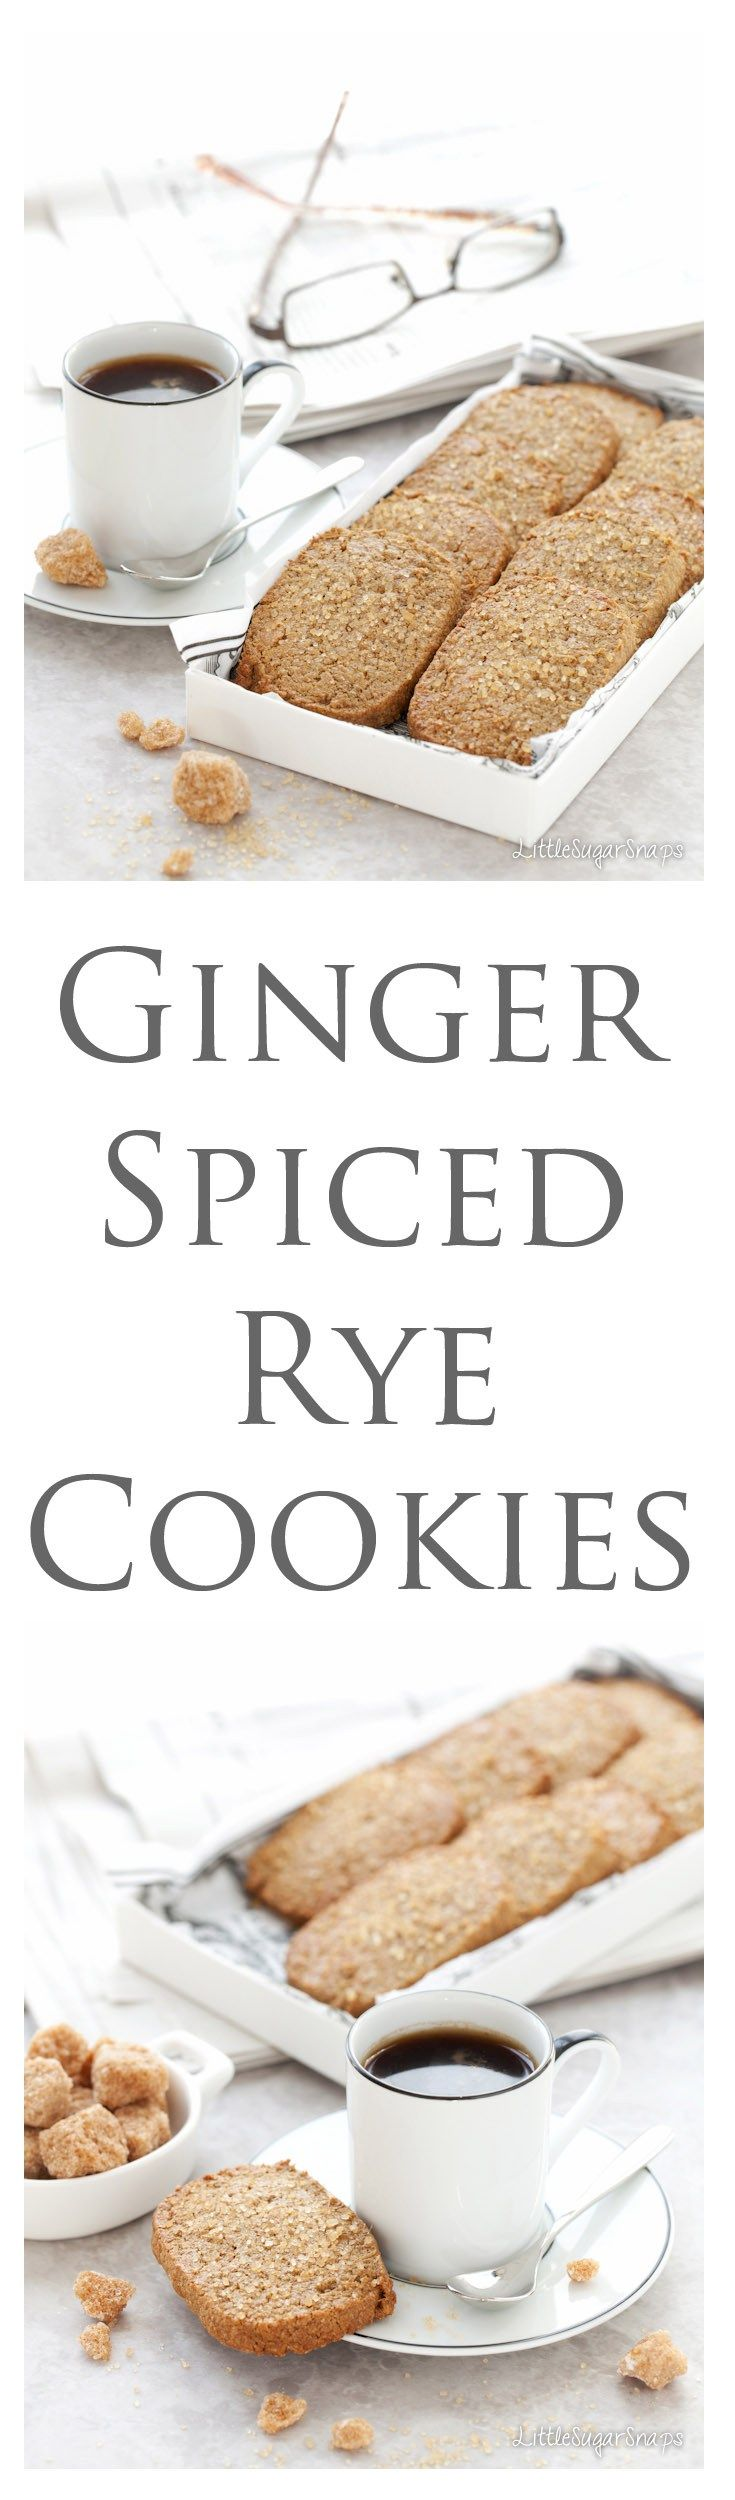 Ginger Spiced Rye Biscuits are guaranteed to put a smile on your face. These cookies have a modest appearance that gives way to robust, spicy flavours. Bakeable from frozen - they are the perfect standby.